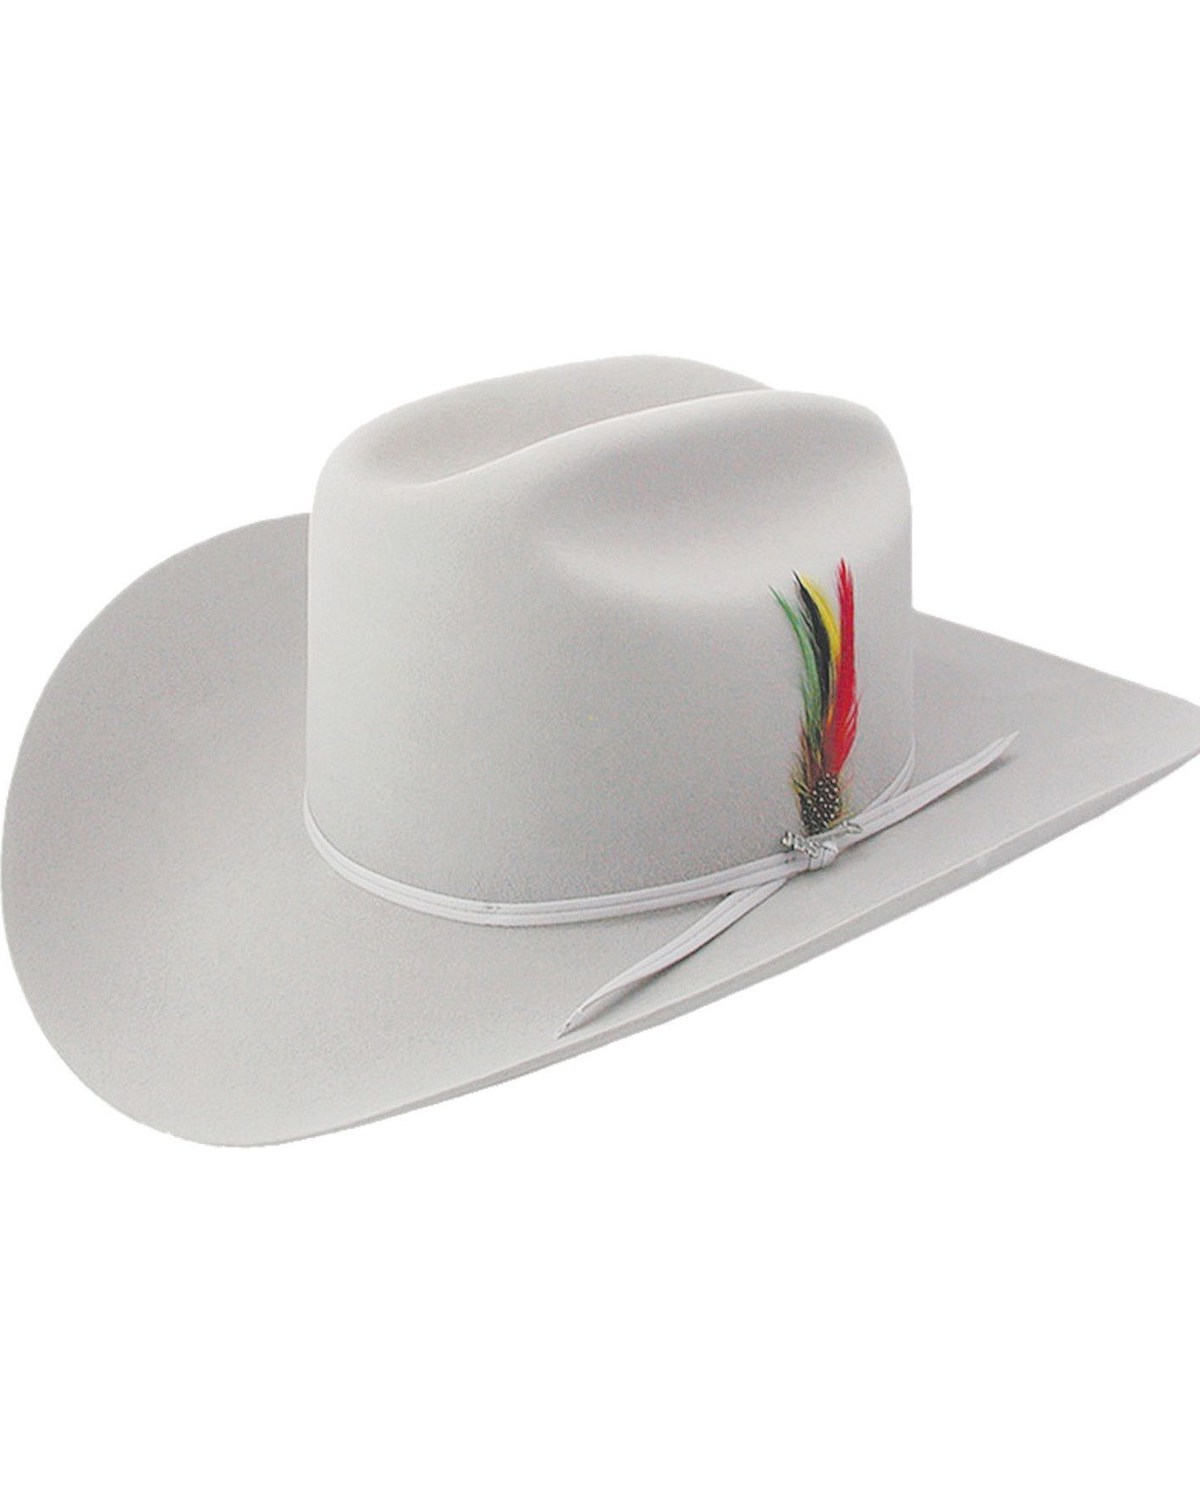 79c08229 Zoomed Image Stetson 6X Silverbelly Rancher Fur Felt Cowboy Hat,  Silverbelly, hi-res